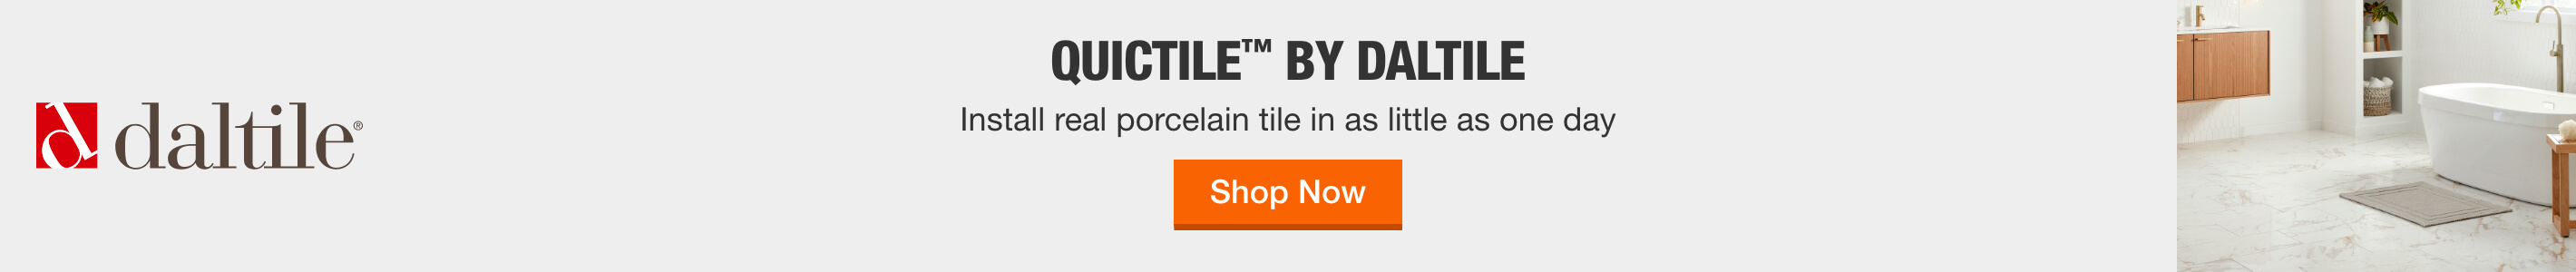 Quictile™ by Daltile Install real porcelain tile in as little as one day